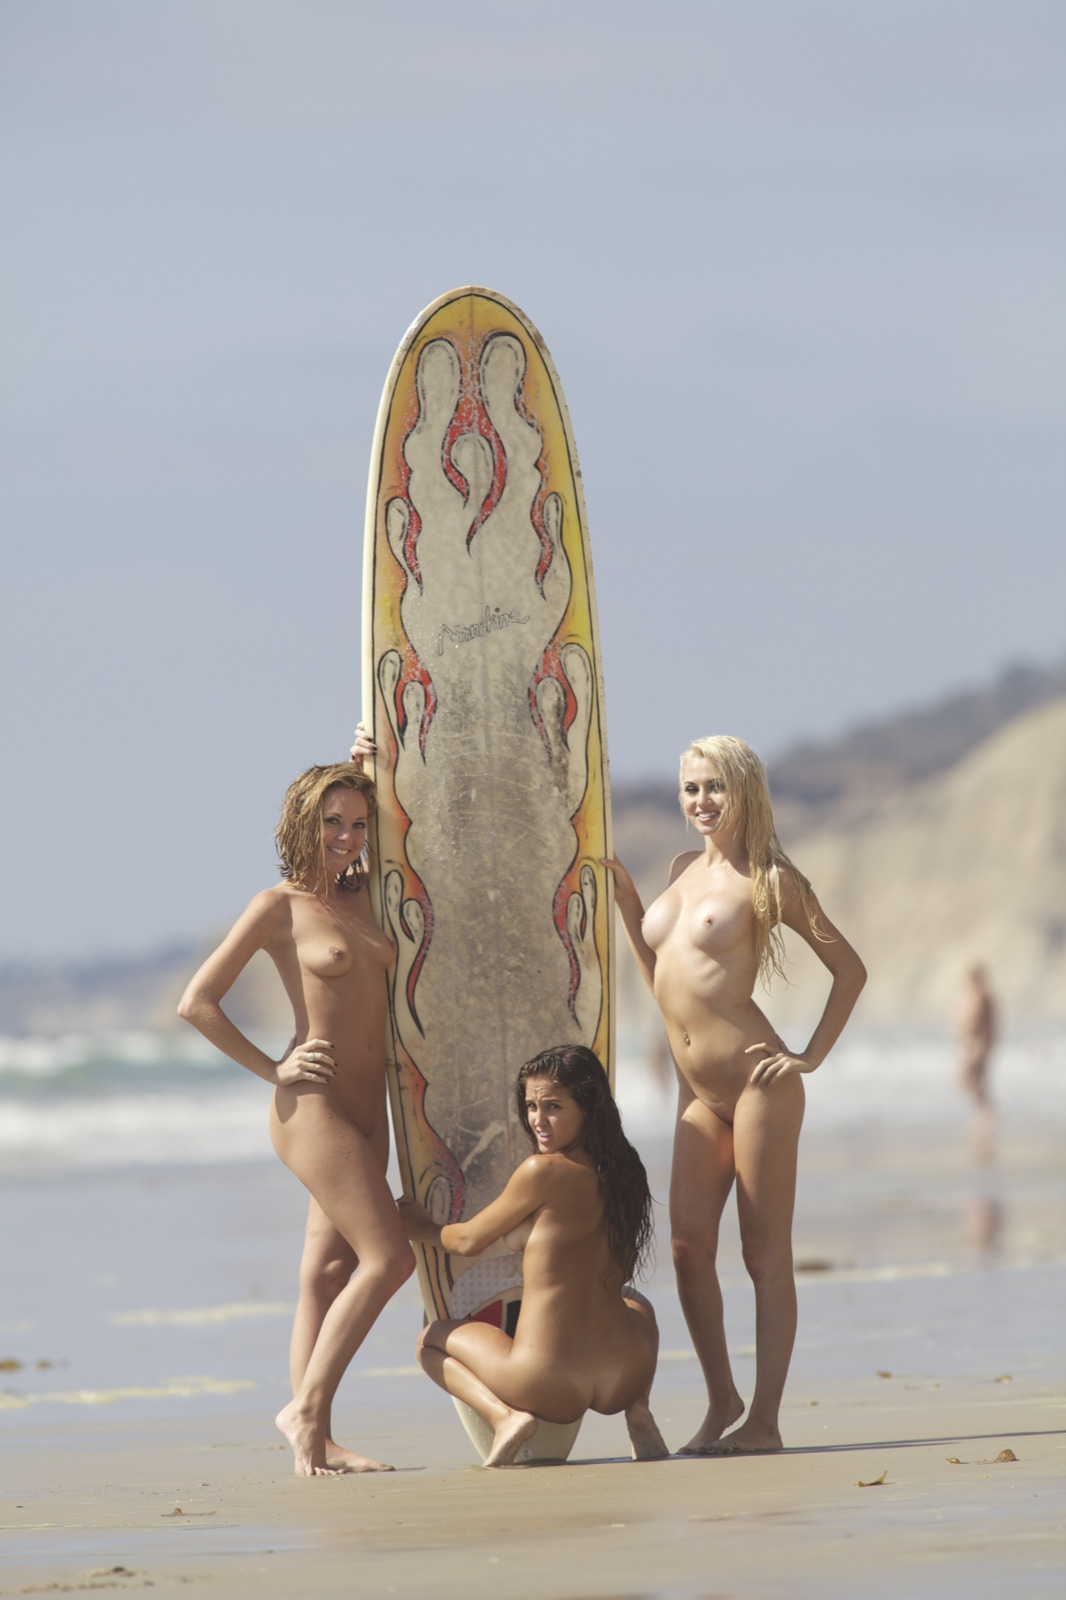 Nude Surfing 20